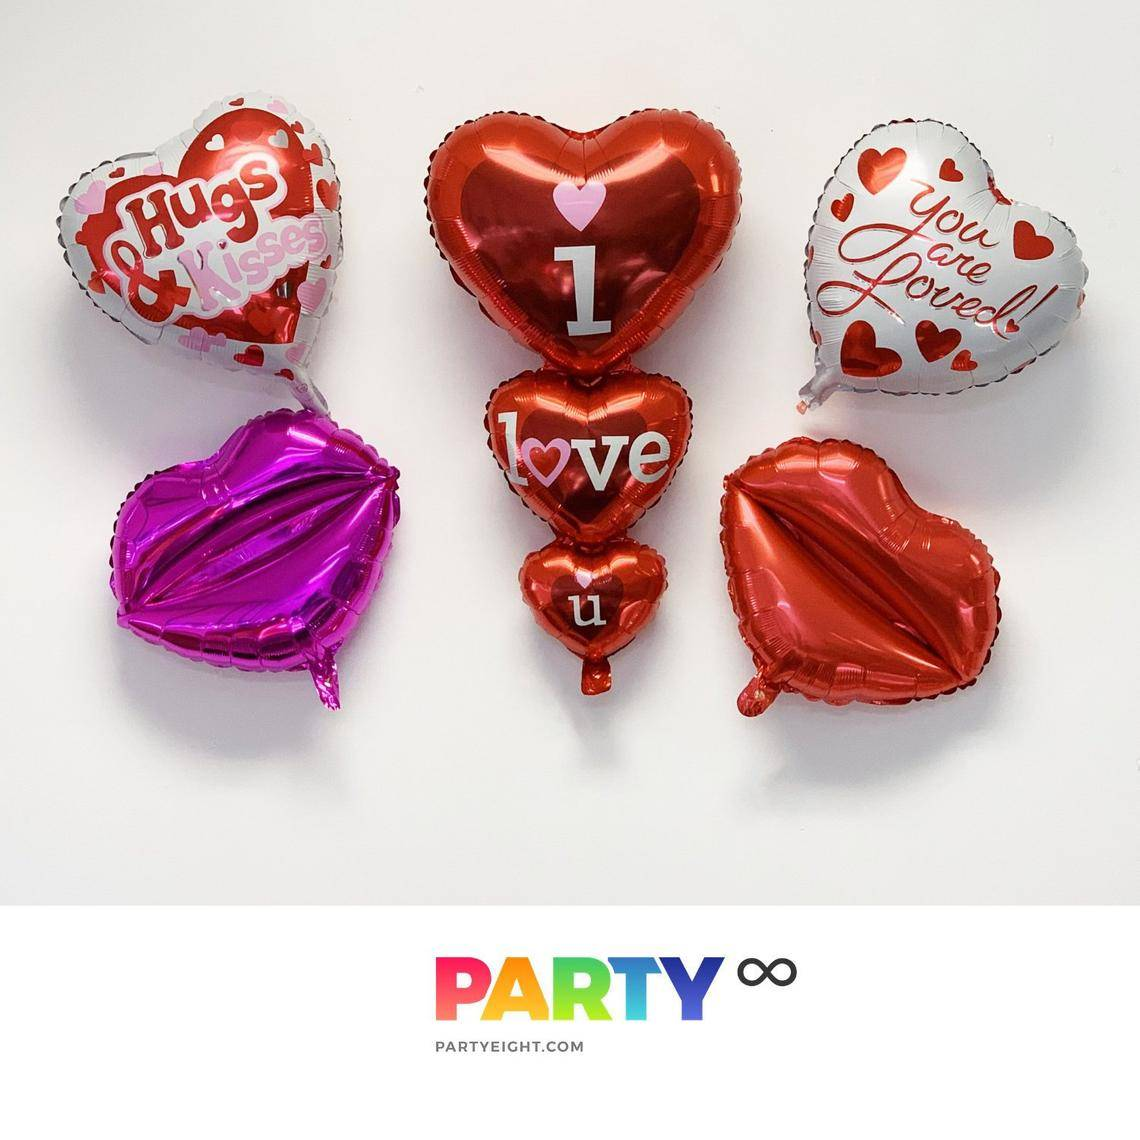 Valentine's Day Decorations Ideas Balloons | Valentine's Day Balloon Bouquet for Valentine's Day/Engagement Party/Wedding Decorations